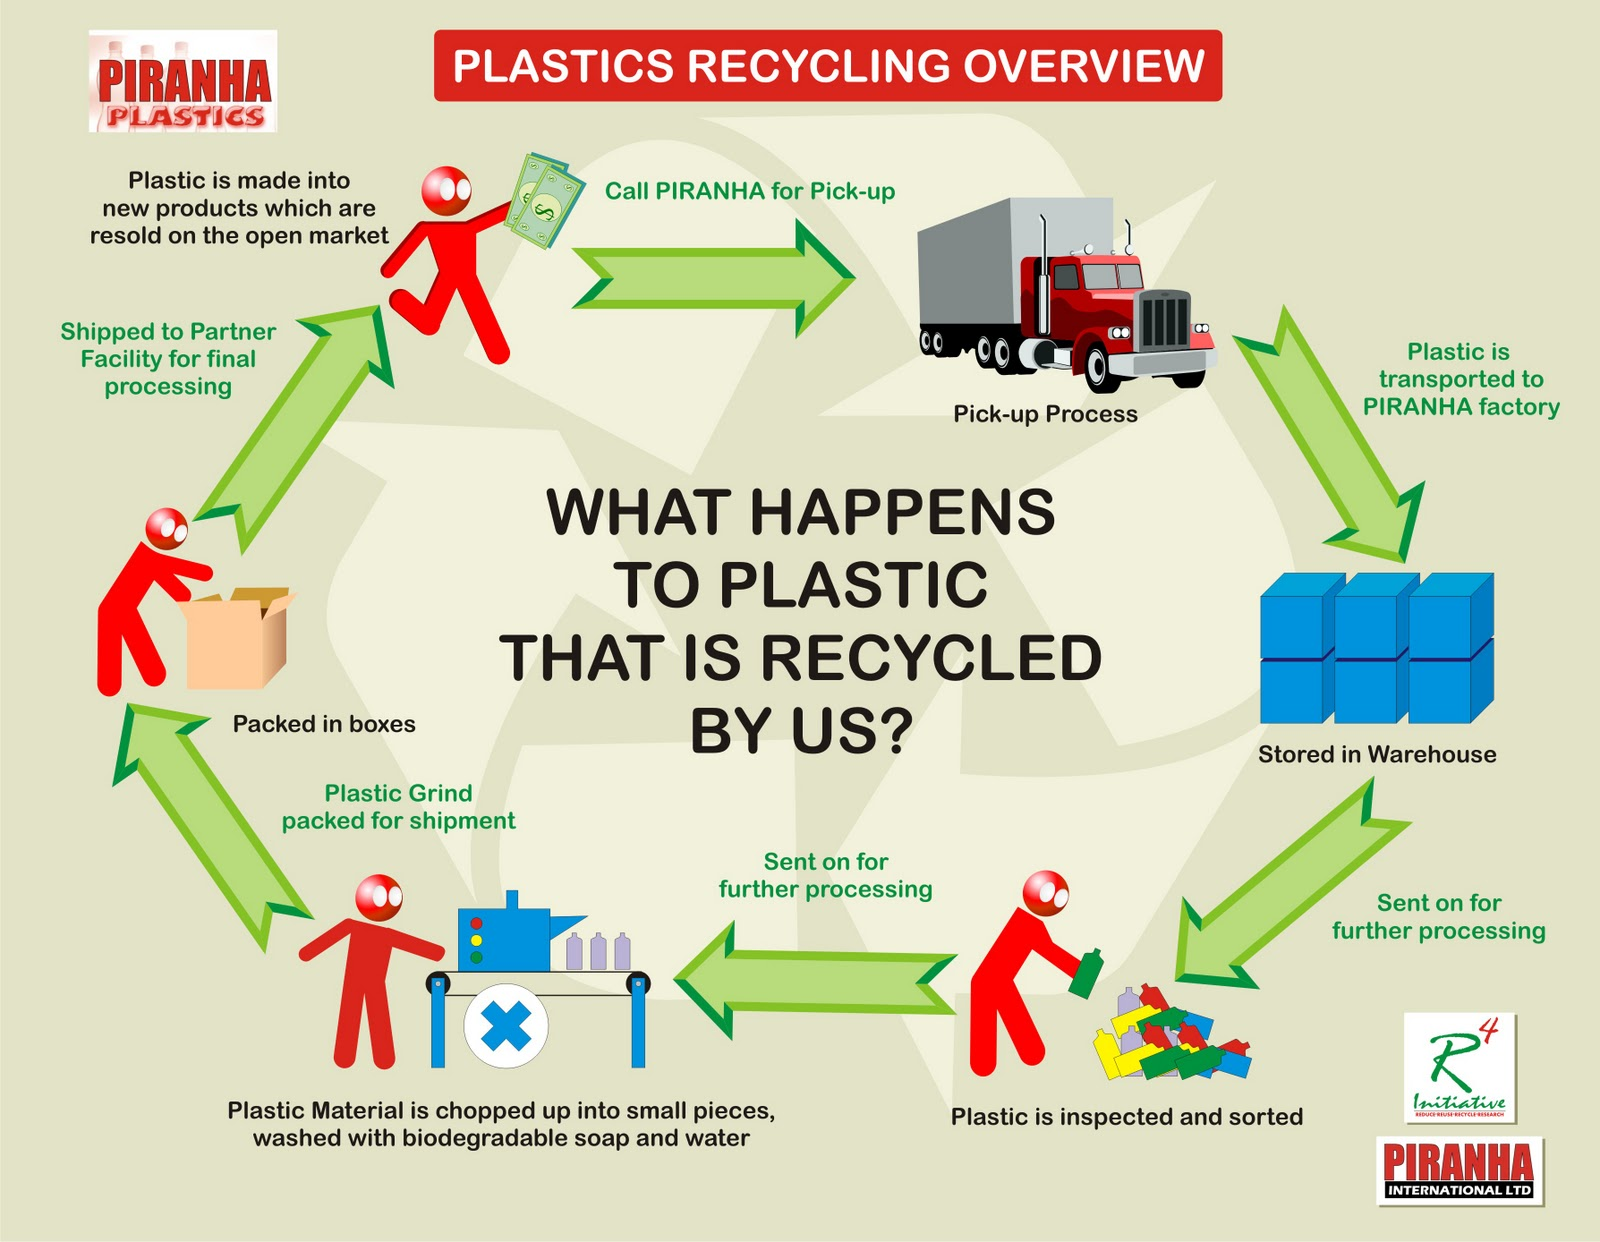 plastic recycling thesis Download thesis statement on plastic recycling in our database or order an original thesis paper that will be written by one of our staff writers and delivered.